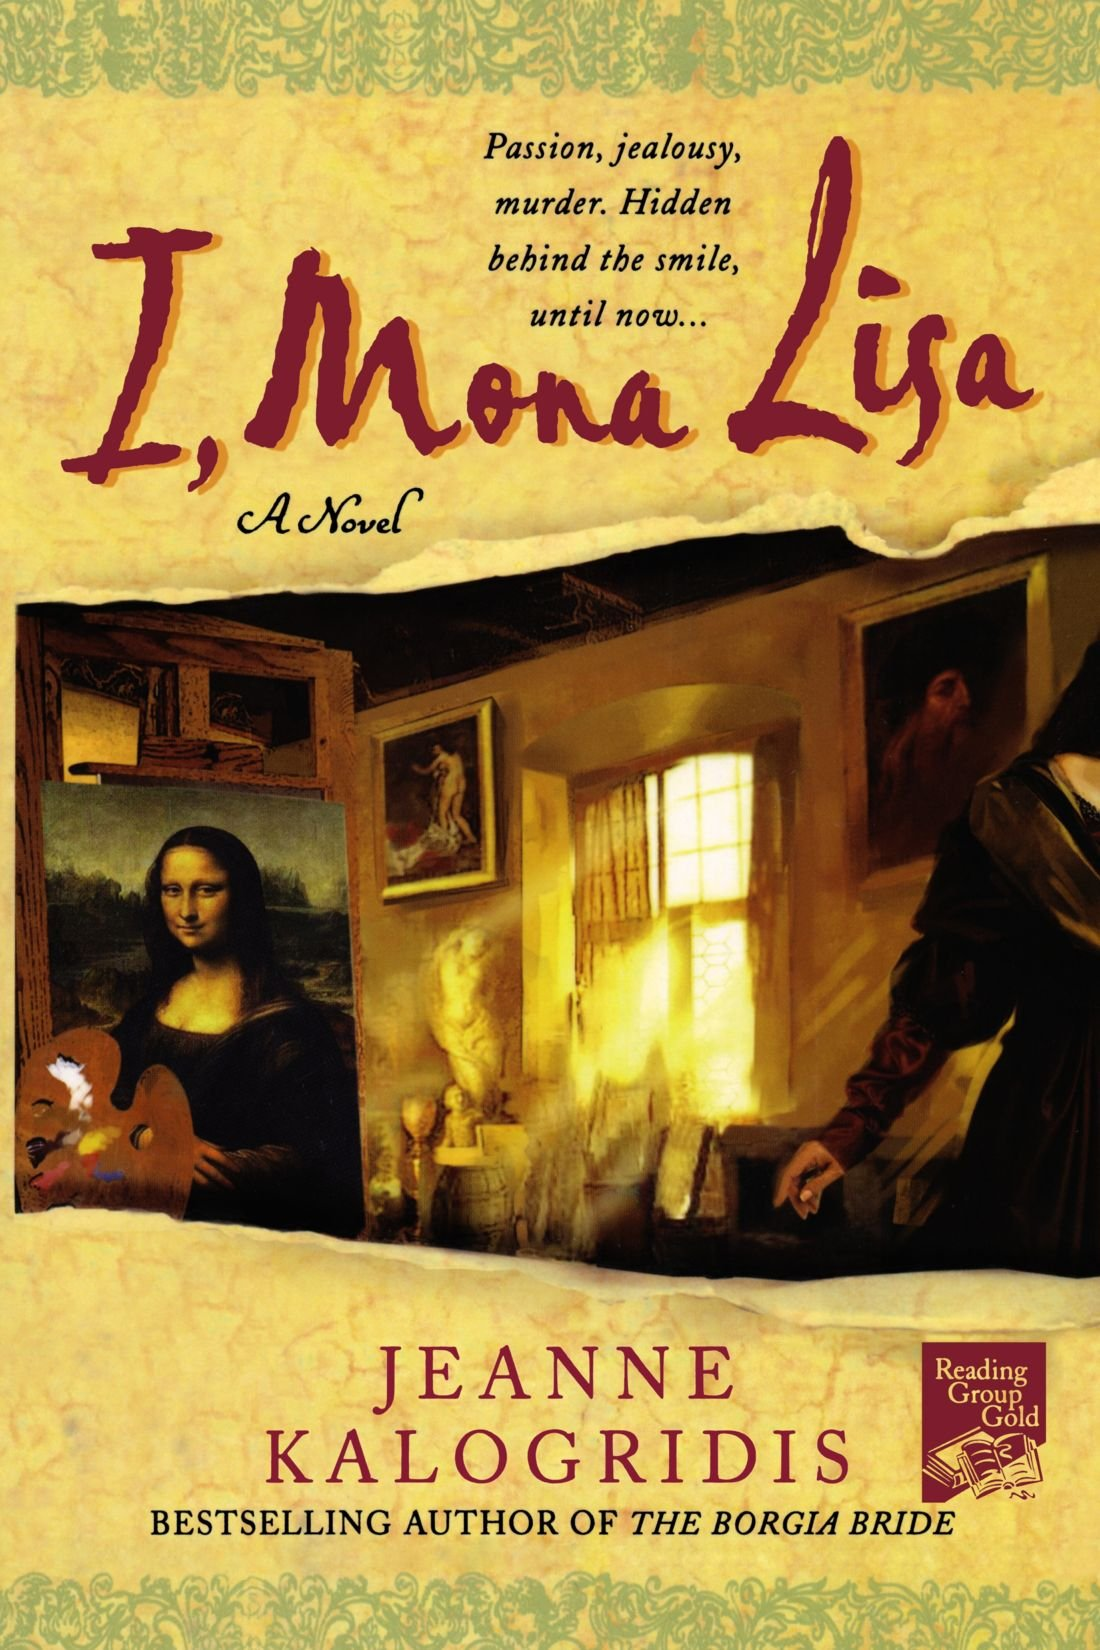 I, Mona Lisa by Jeanne Kalogridis - Another murder mystery, this one is told from the point of view of Lisa del Giocondo (i.e., Mona Lisa), and it provides an interesting take on the creation of the world's most famous portrait. Part romance novel, part thriller, this is a great read for those who like a page turner.